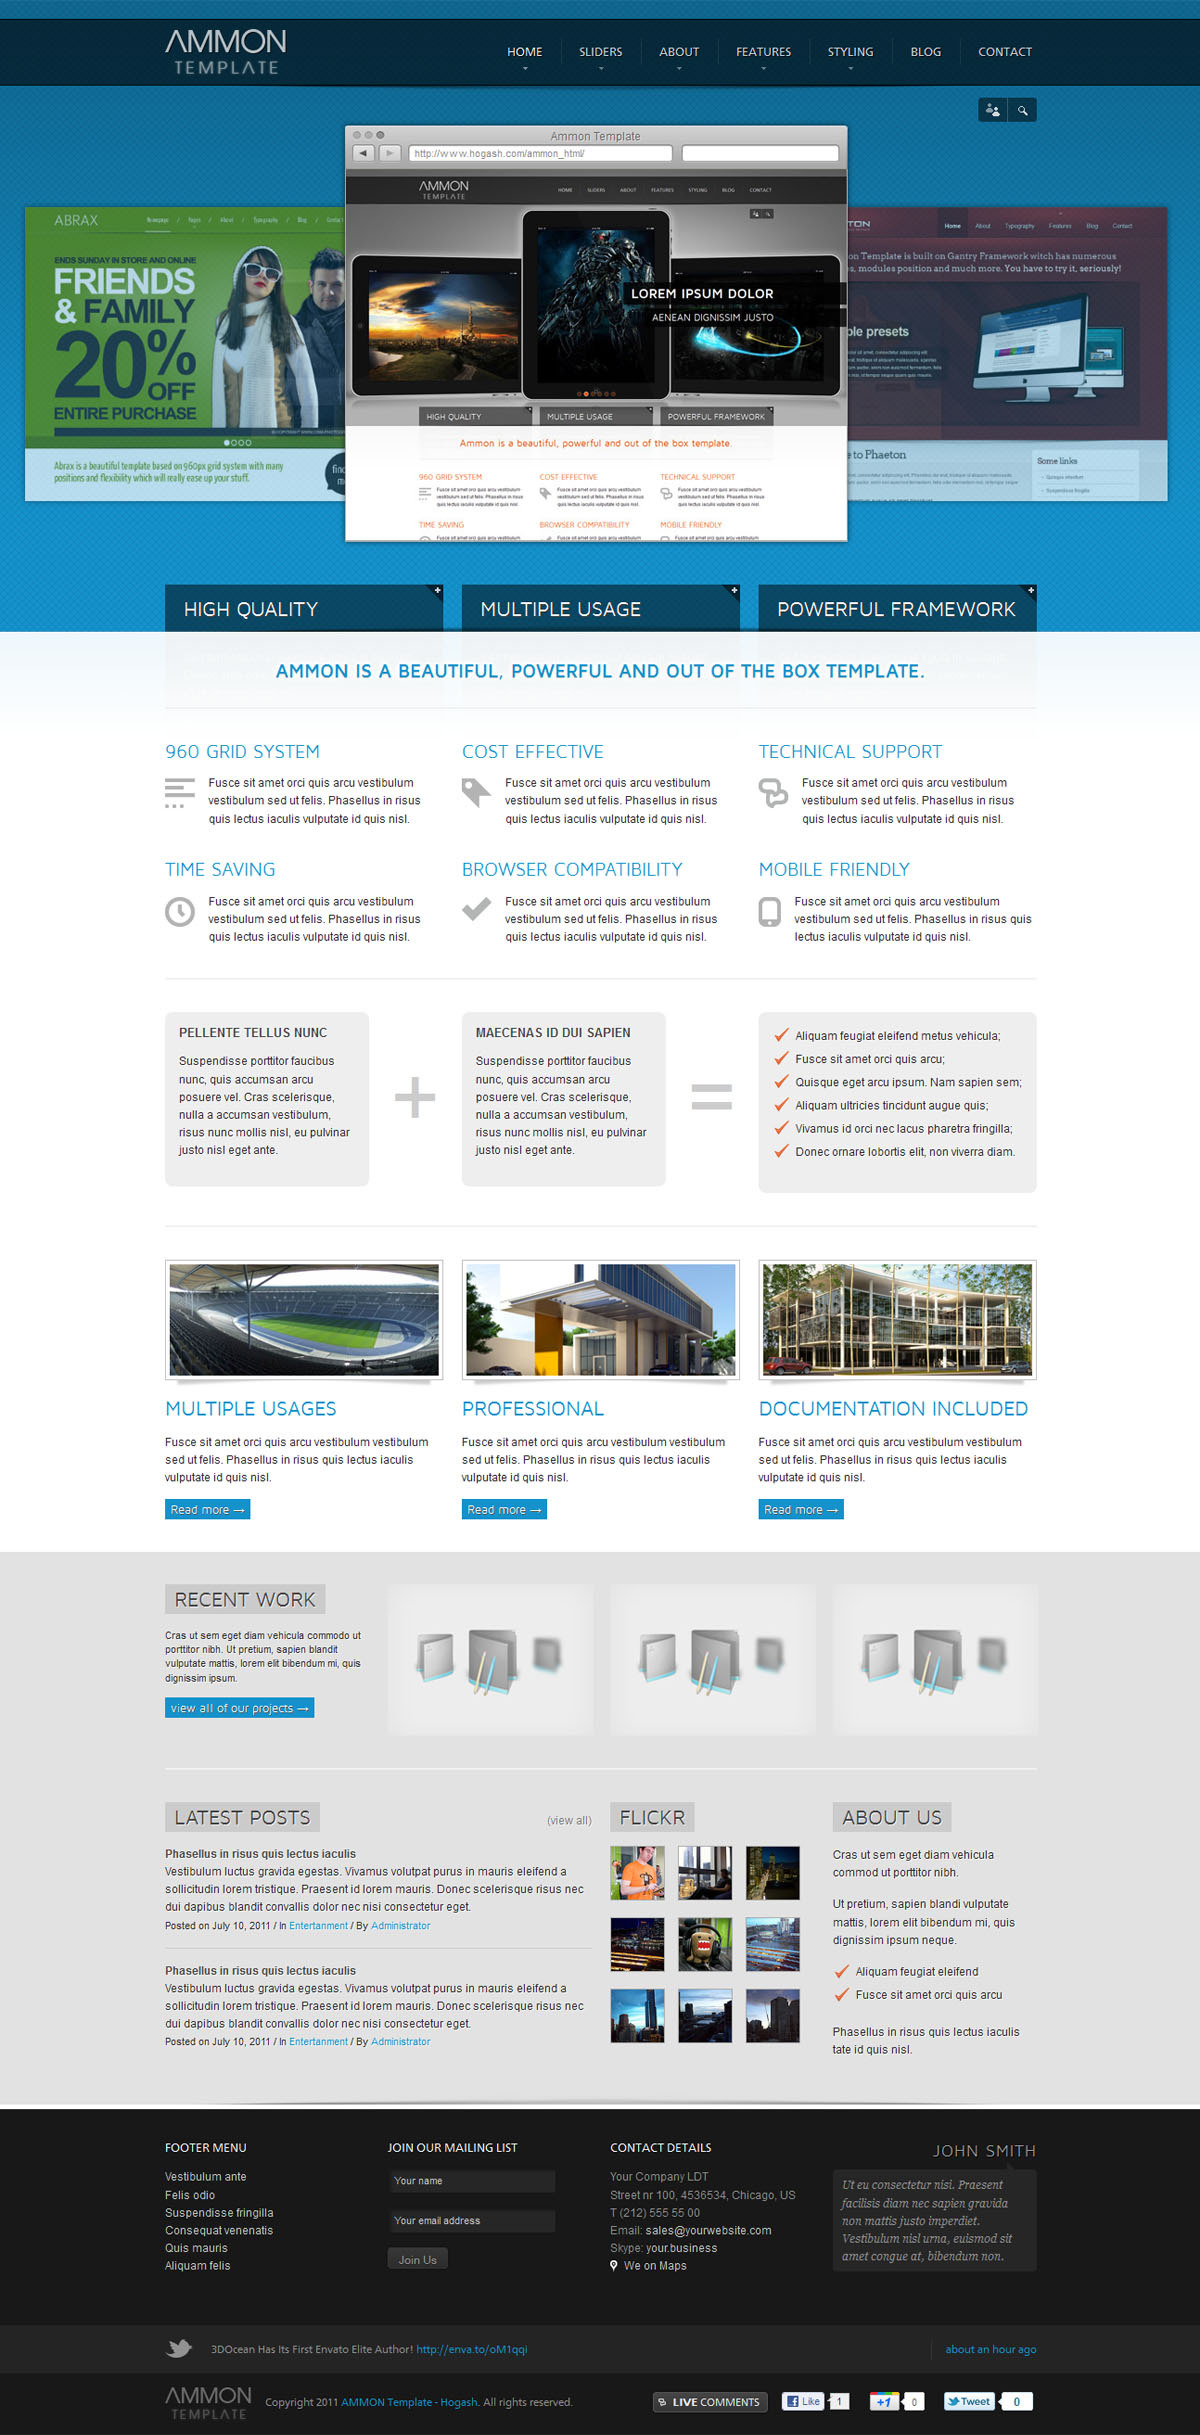 Ammon Template - GENERAL PAGE - PORTFOLIO SHOWCASE